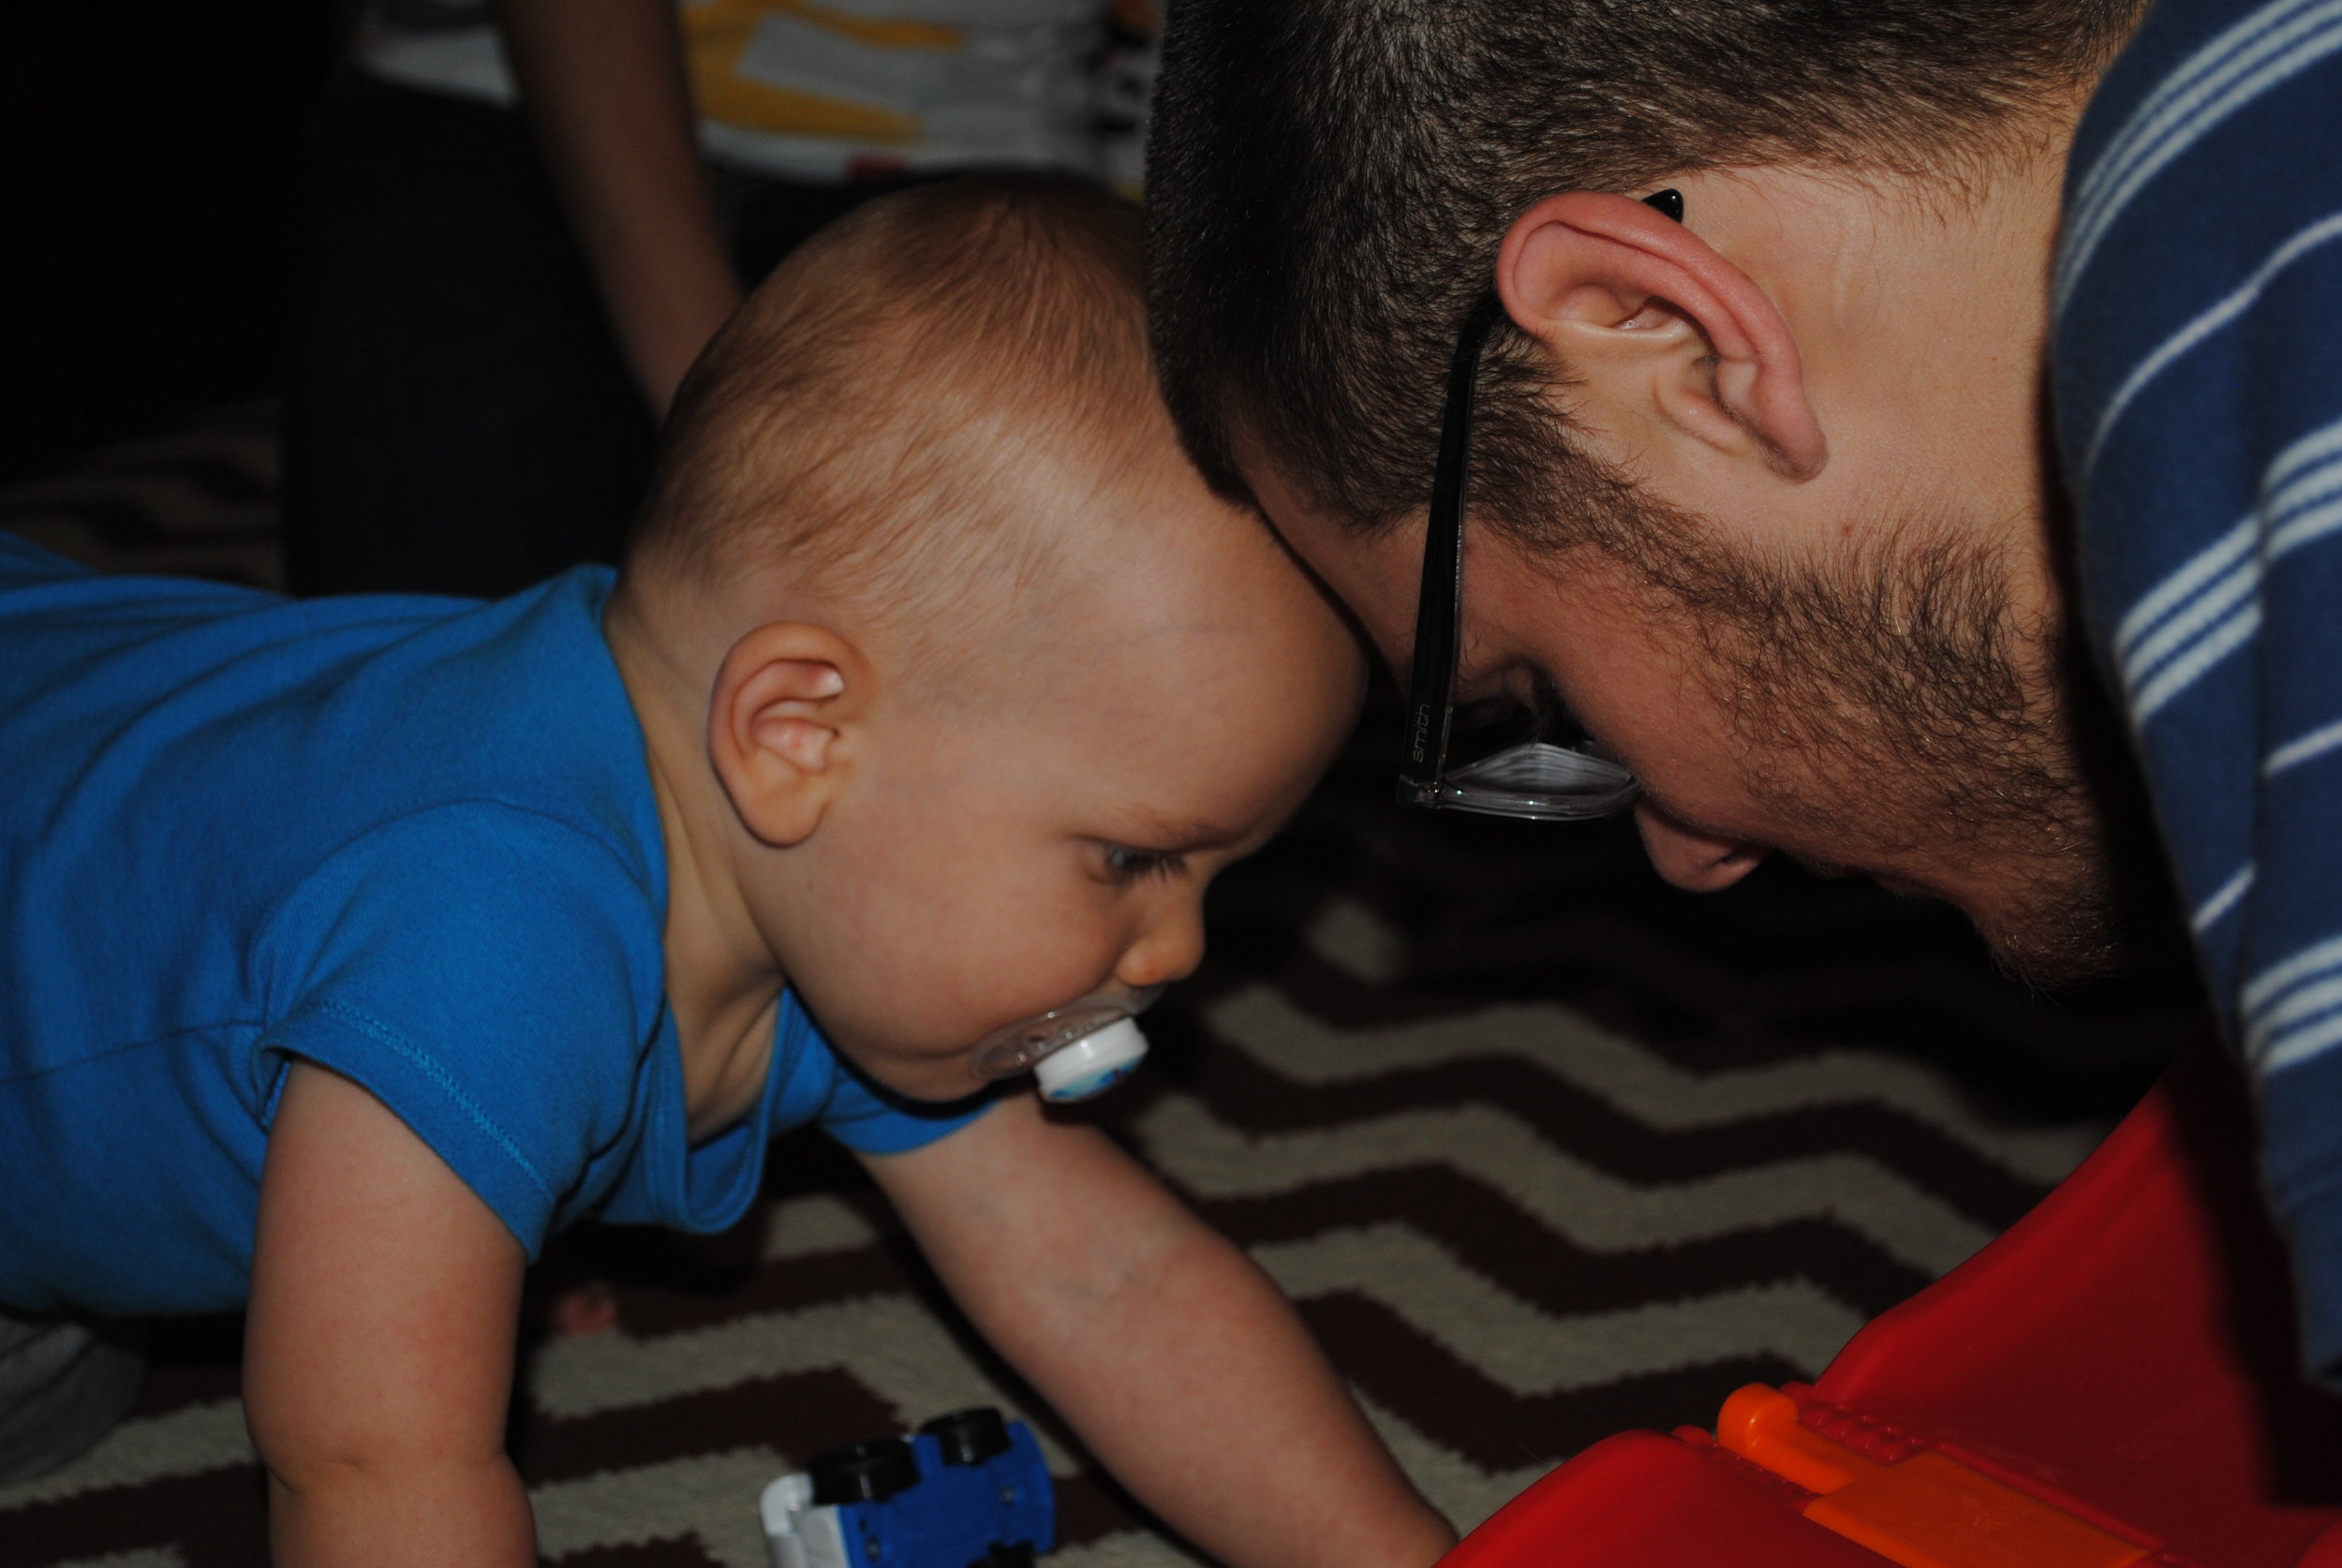 Putting their beautiful heads together. My son playing with his son. A treasured moment in time.